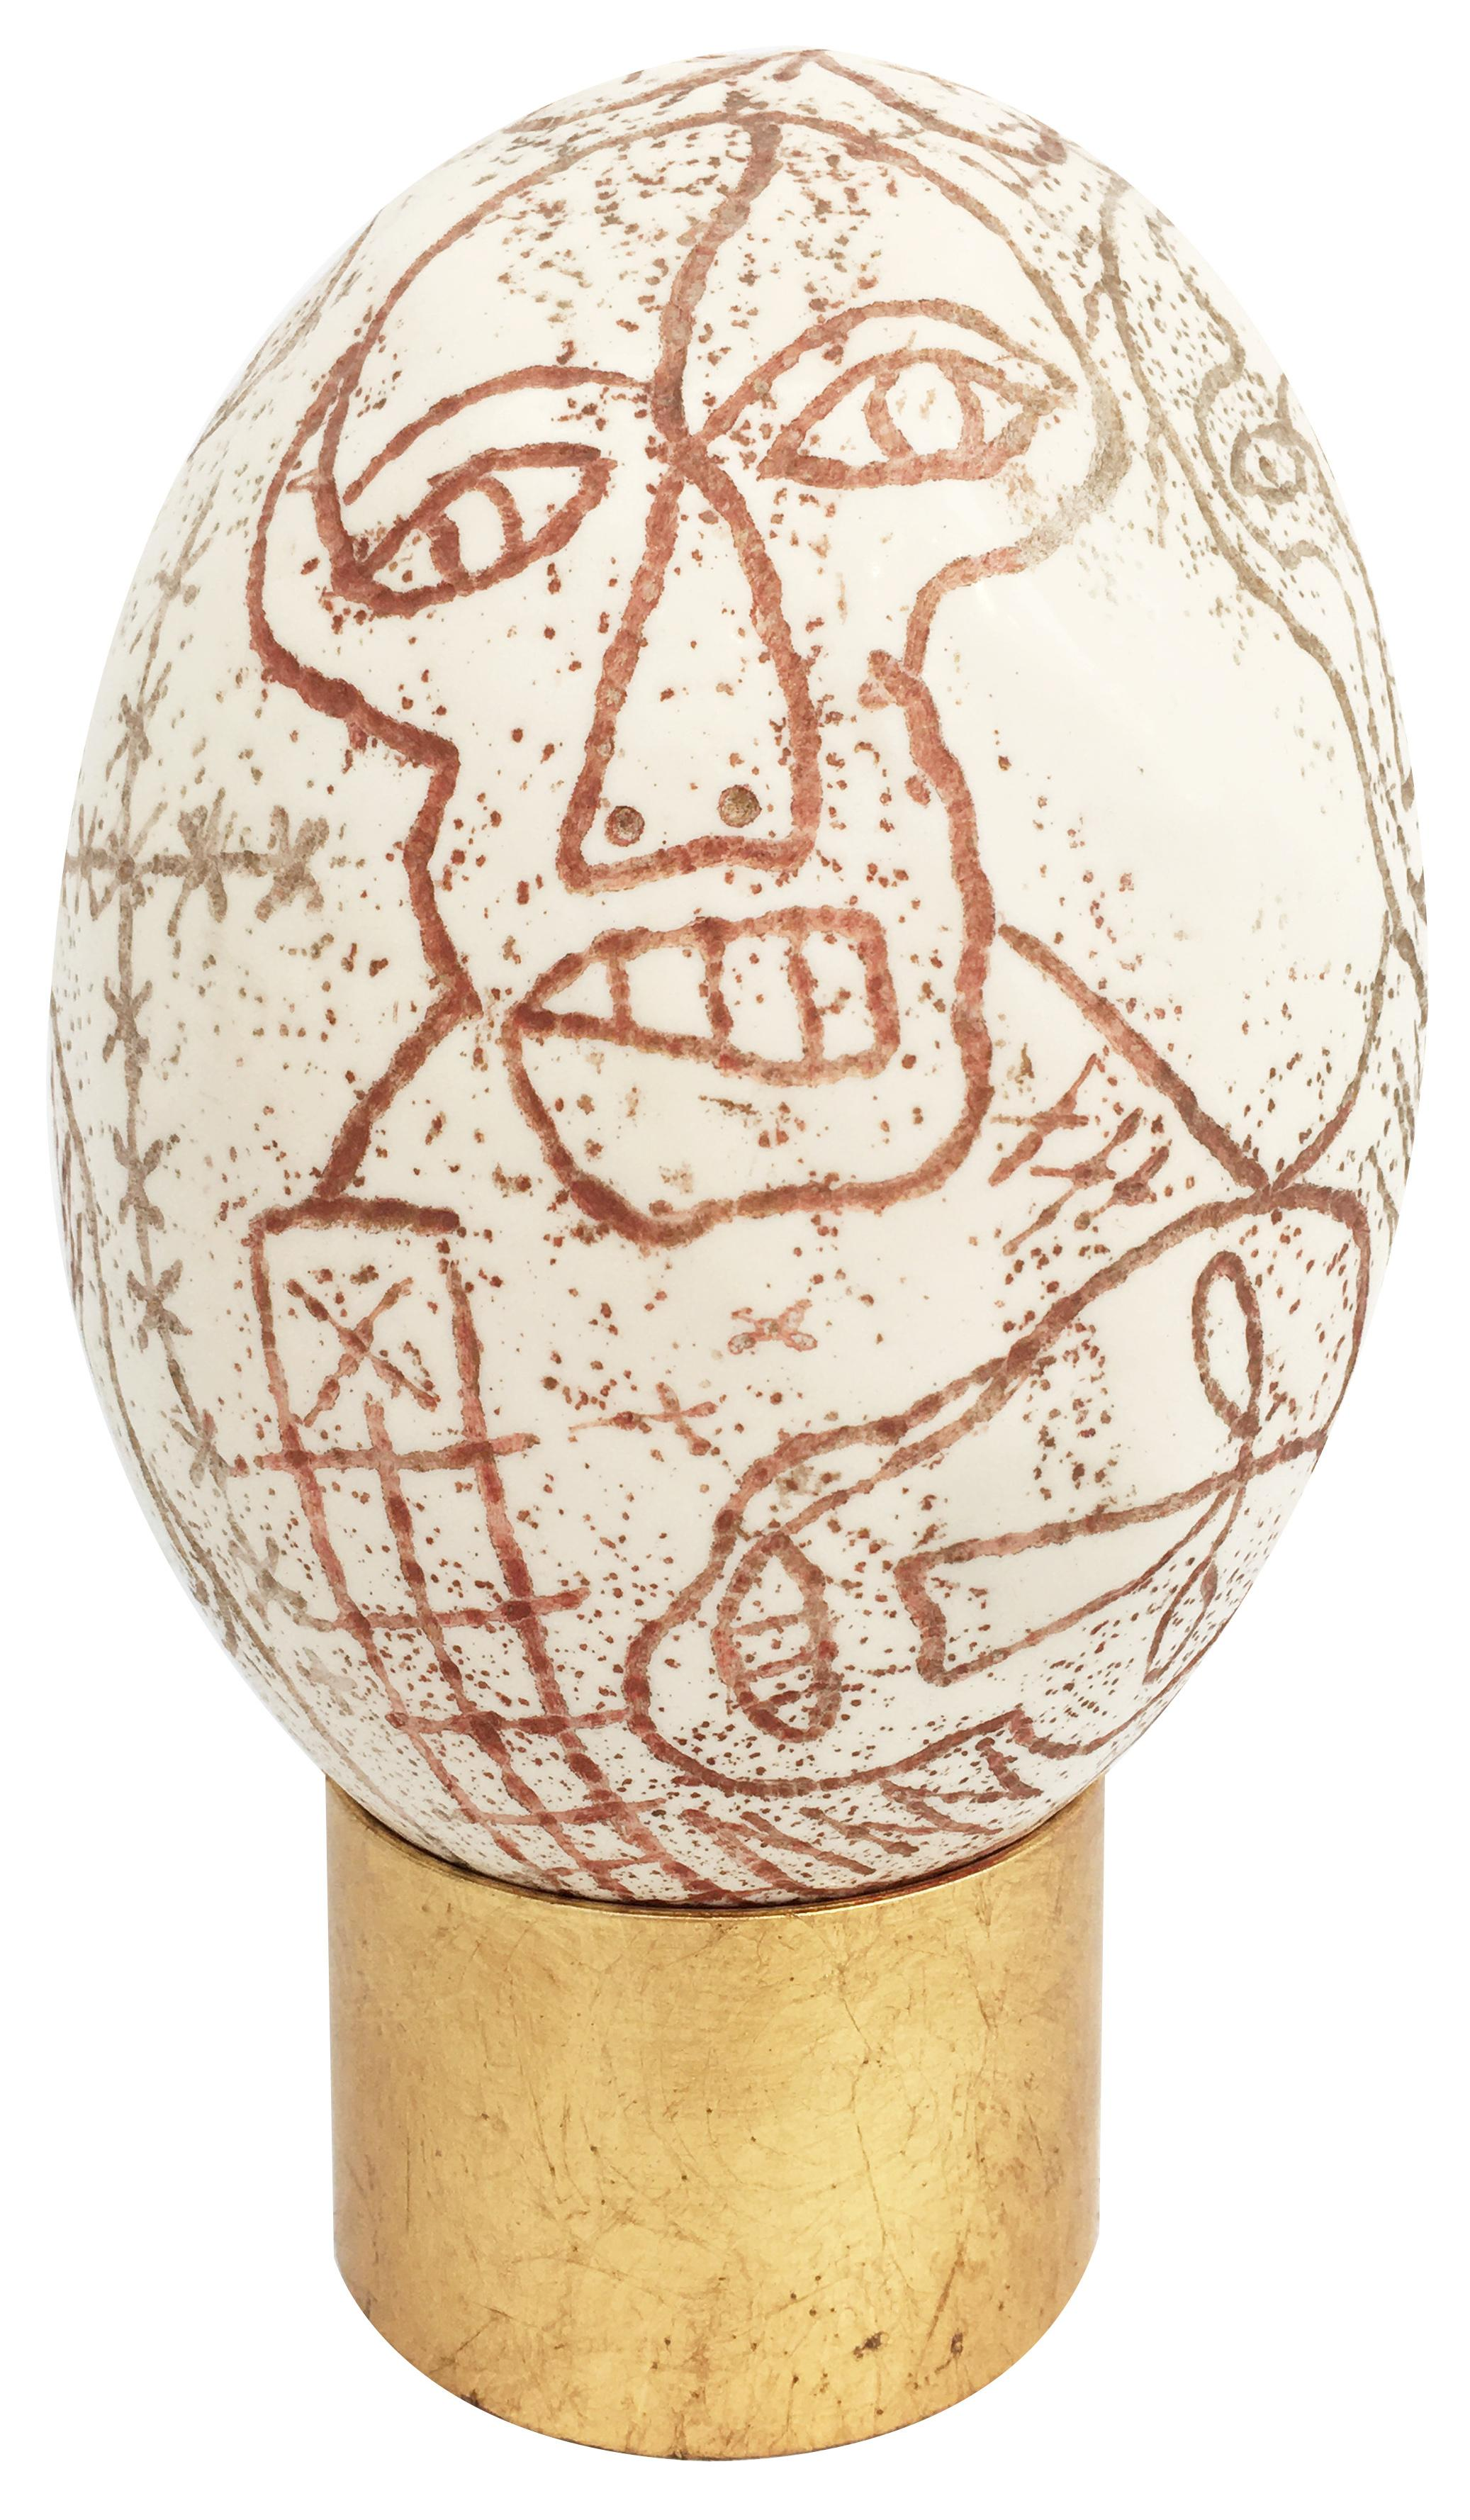 Untitled (Ostrich Egg)